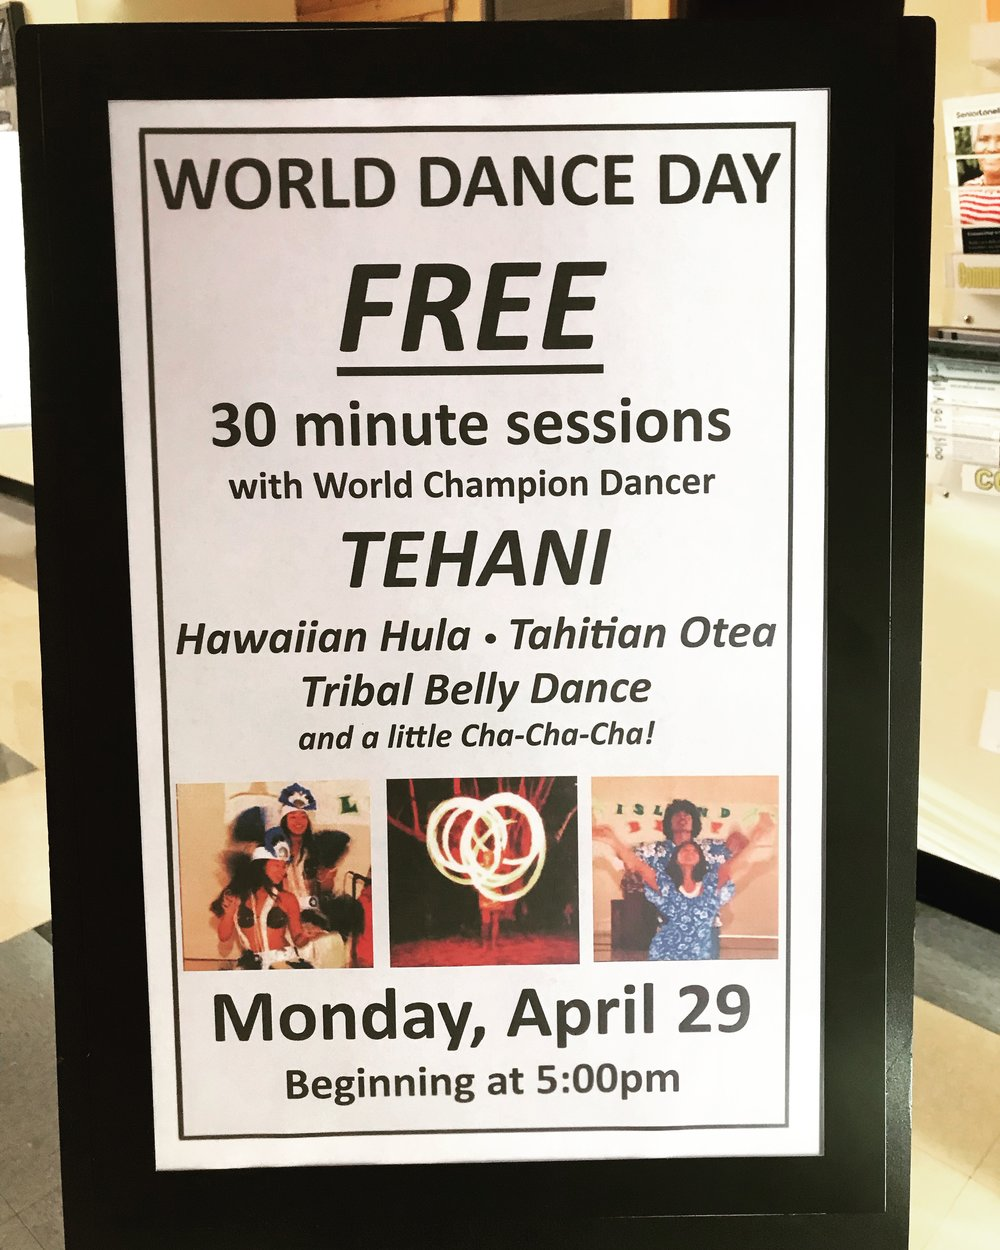 World Dance Day was a success!  Thanks to the City of Newport, we had a successful and fulfilling event for an intergenerational group of women (hopefully we'll have men, too, next year!) sharing the love of dance :)  Love it!  Looking forward to making this an annual event… as long as I am here in Oregon (I'm thinking 2022 is the year I move to Florida or Hawaii… we'll see how the cards fall for us).  Until then, we are rocking out on the Oregon Coast and continuing contracts in Washington and Southern California (woohoo!).  Really enjoying this ride here in the Pacific Northwest.  It's been quite an adventure!  More soon :)